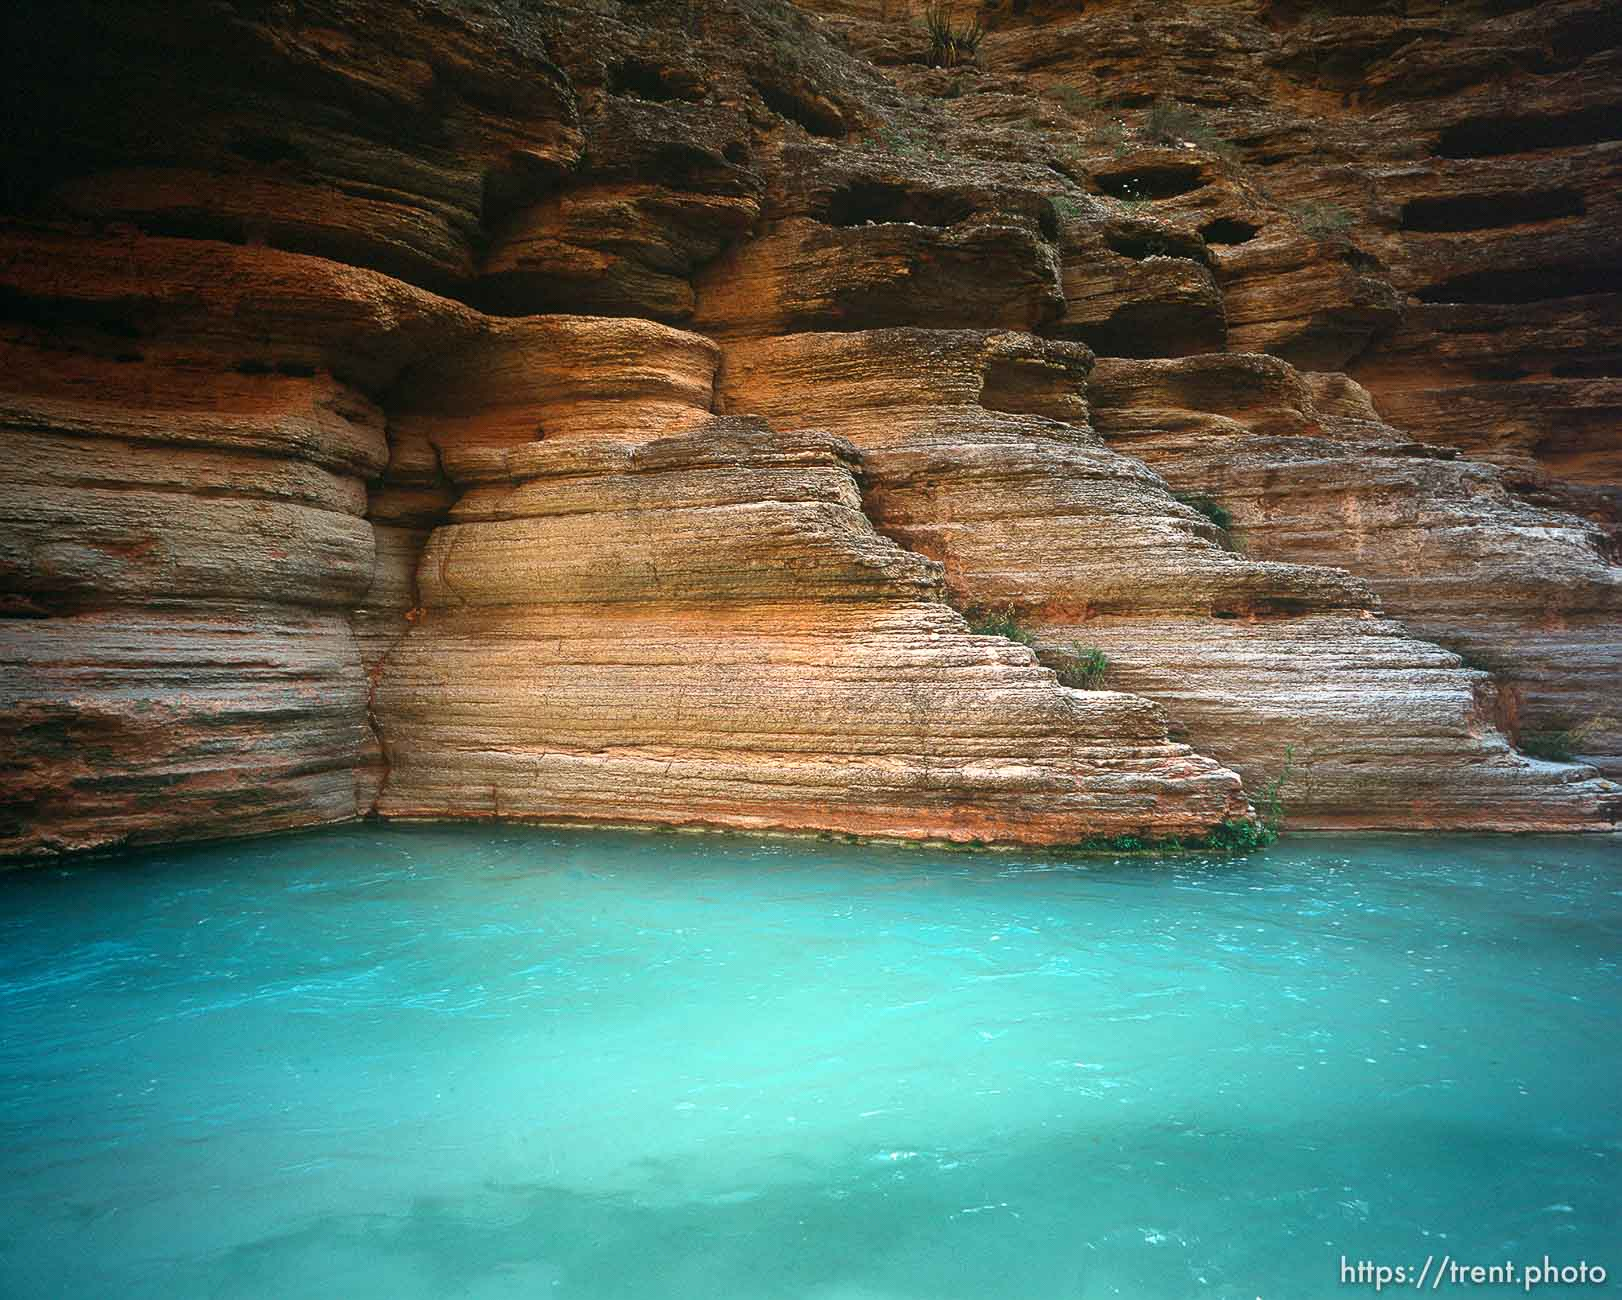 Blue water and rocks in Havisu Canyon. Grand Canyon flood trip.